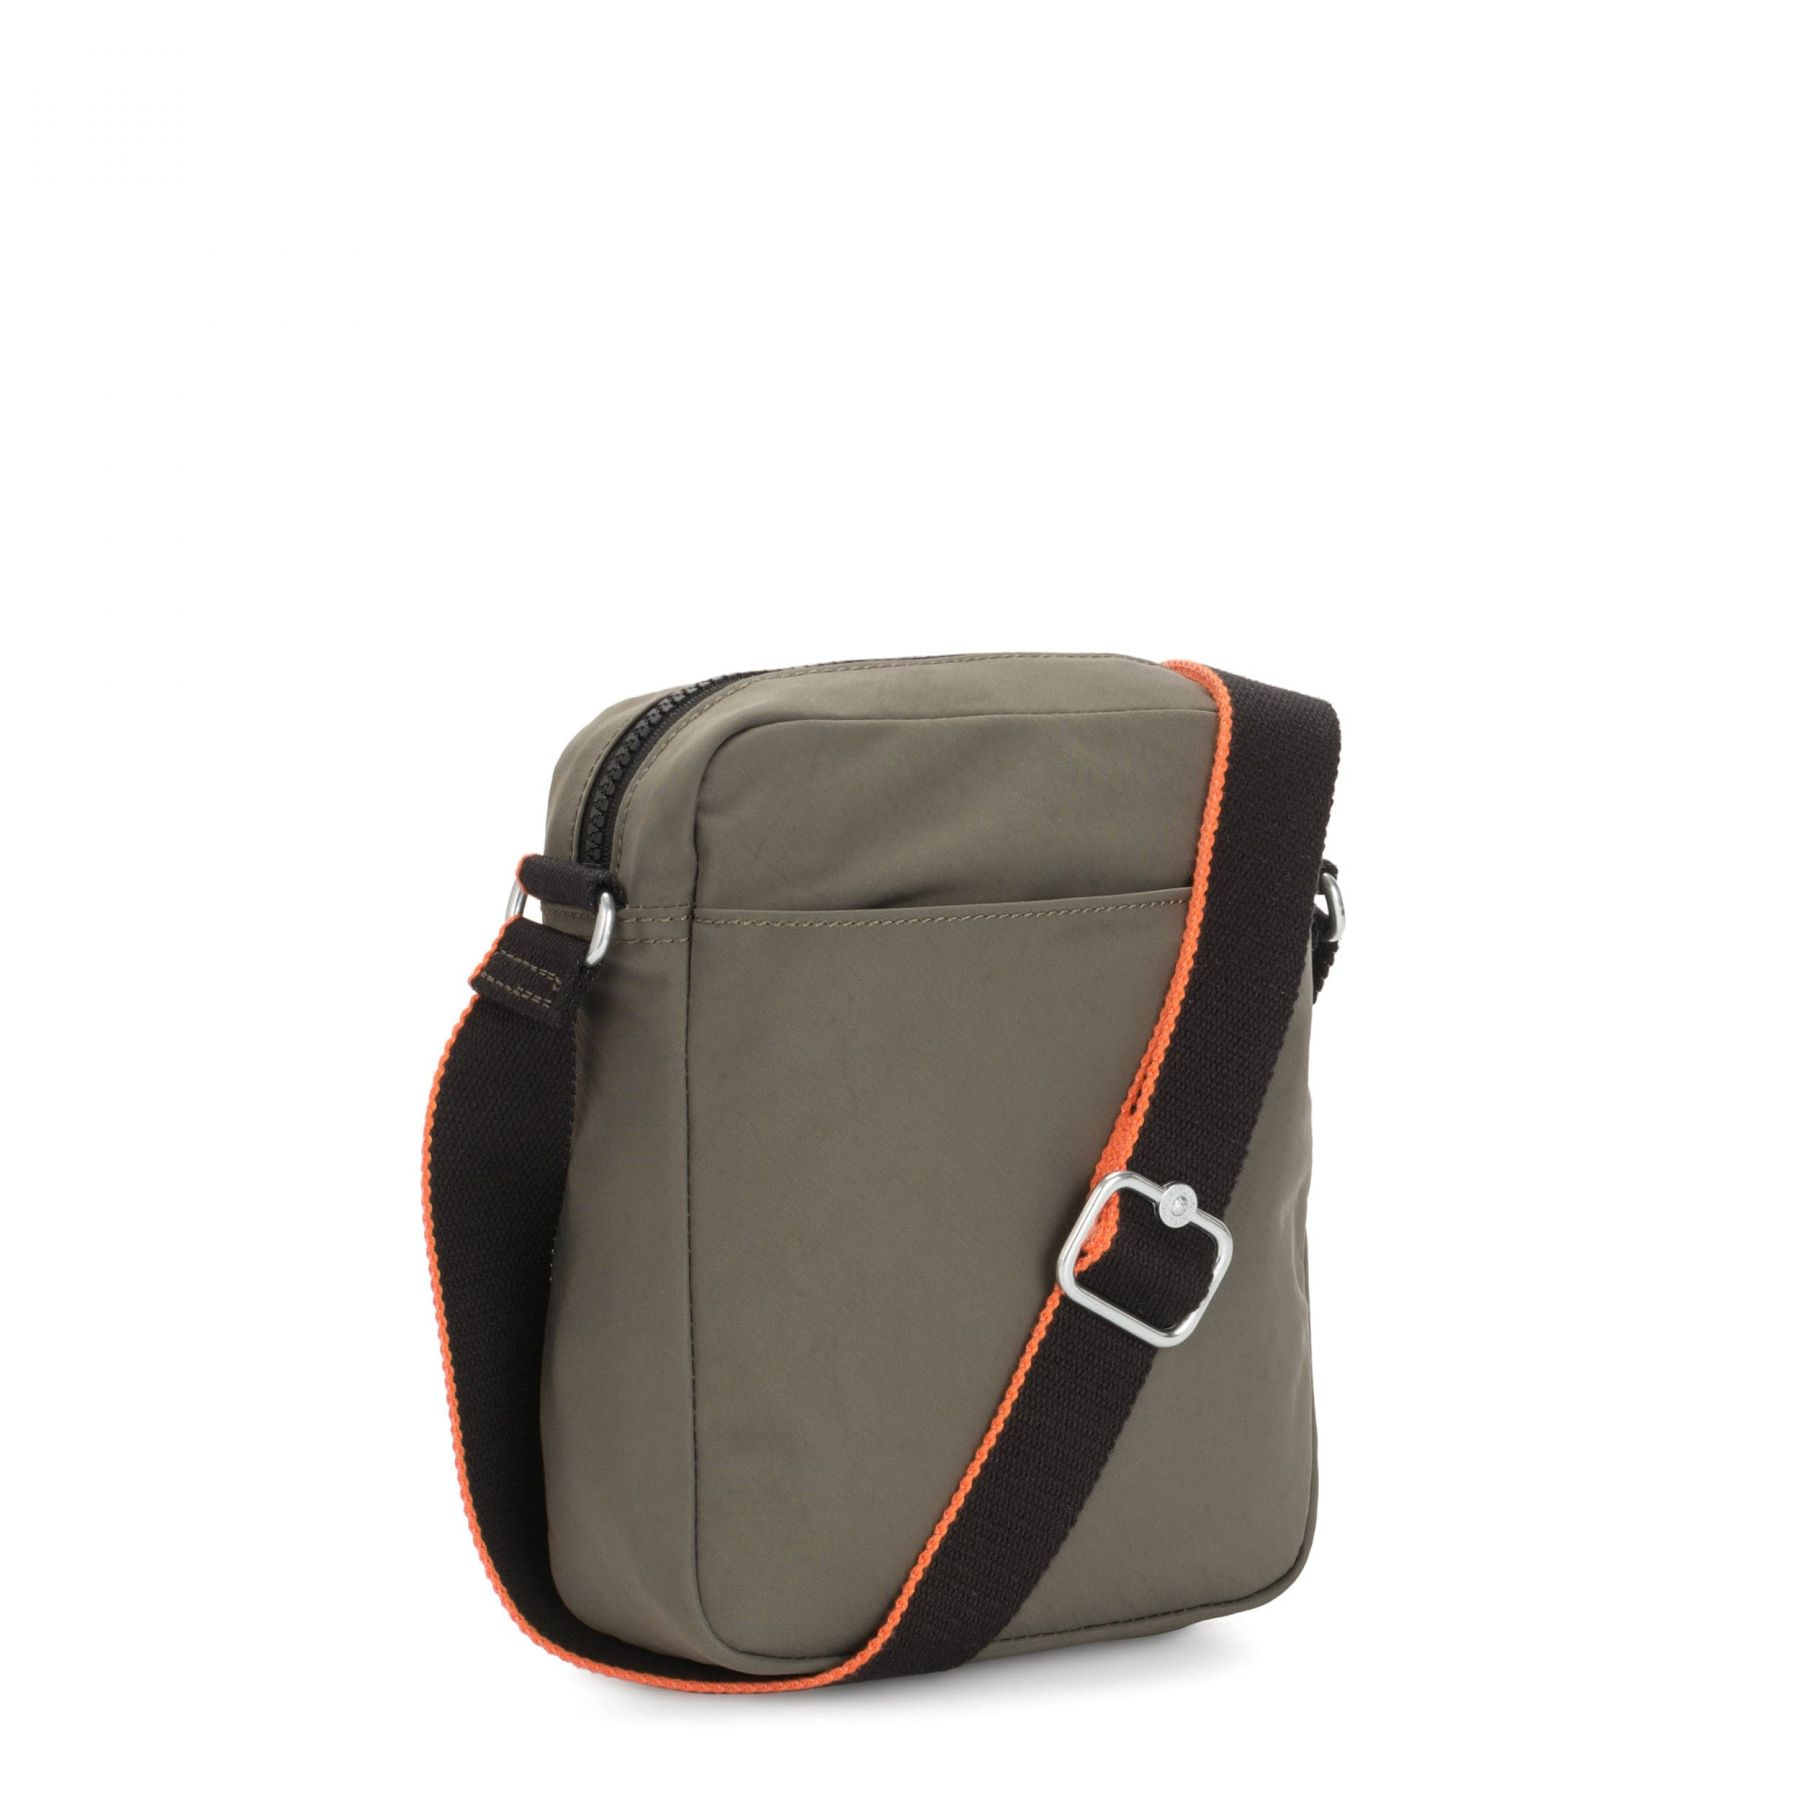 HISA Online Exclusives by Kipling - Back view